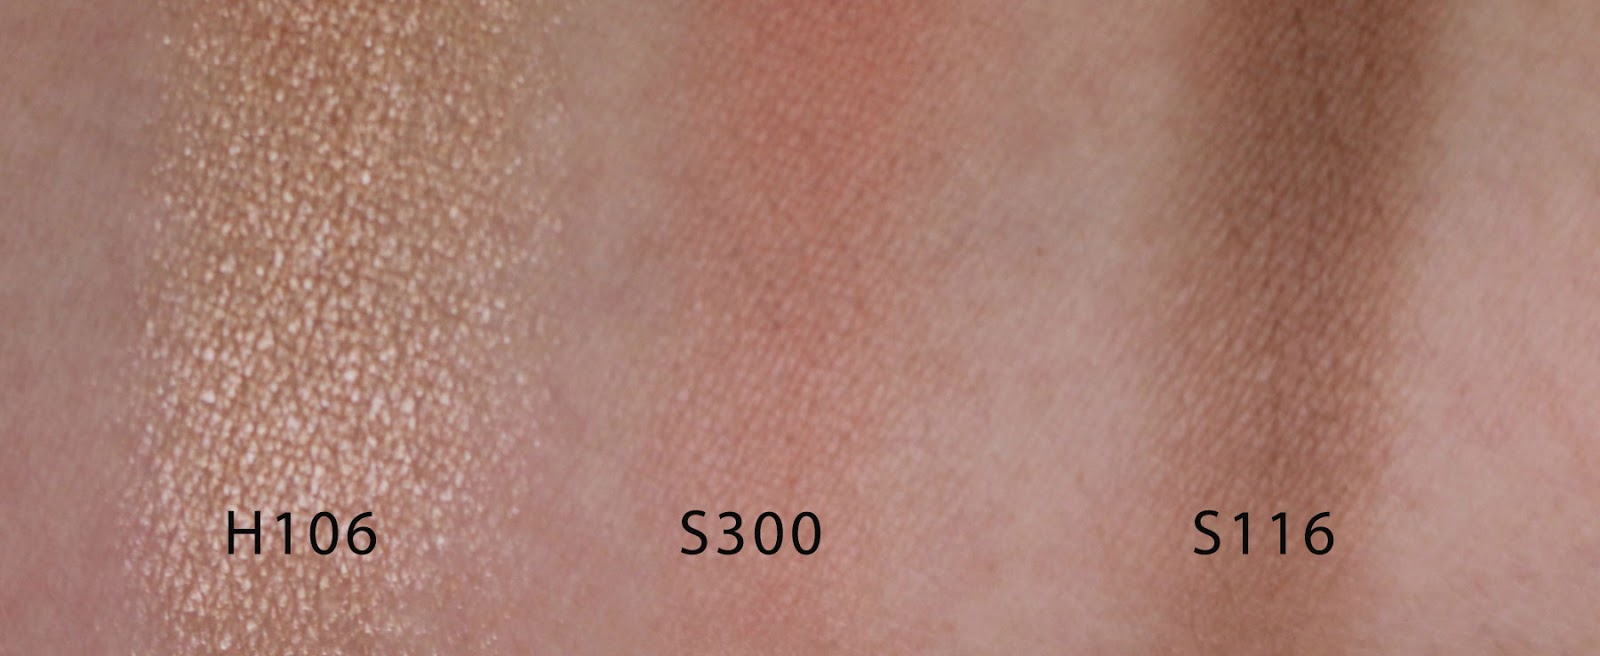 make up for ever artist face color H106 S300 S116 swatches